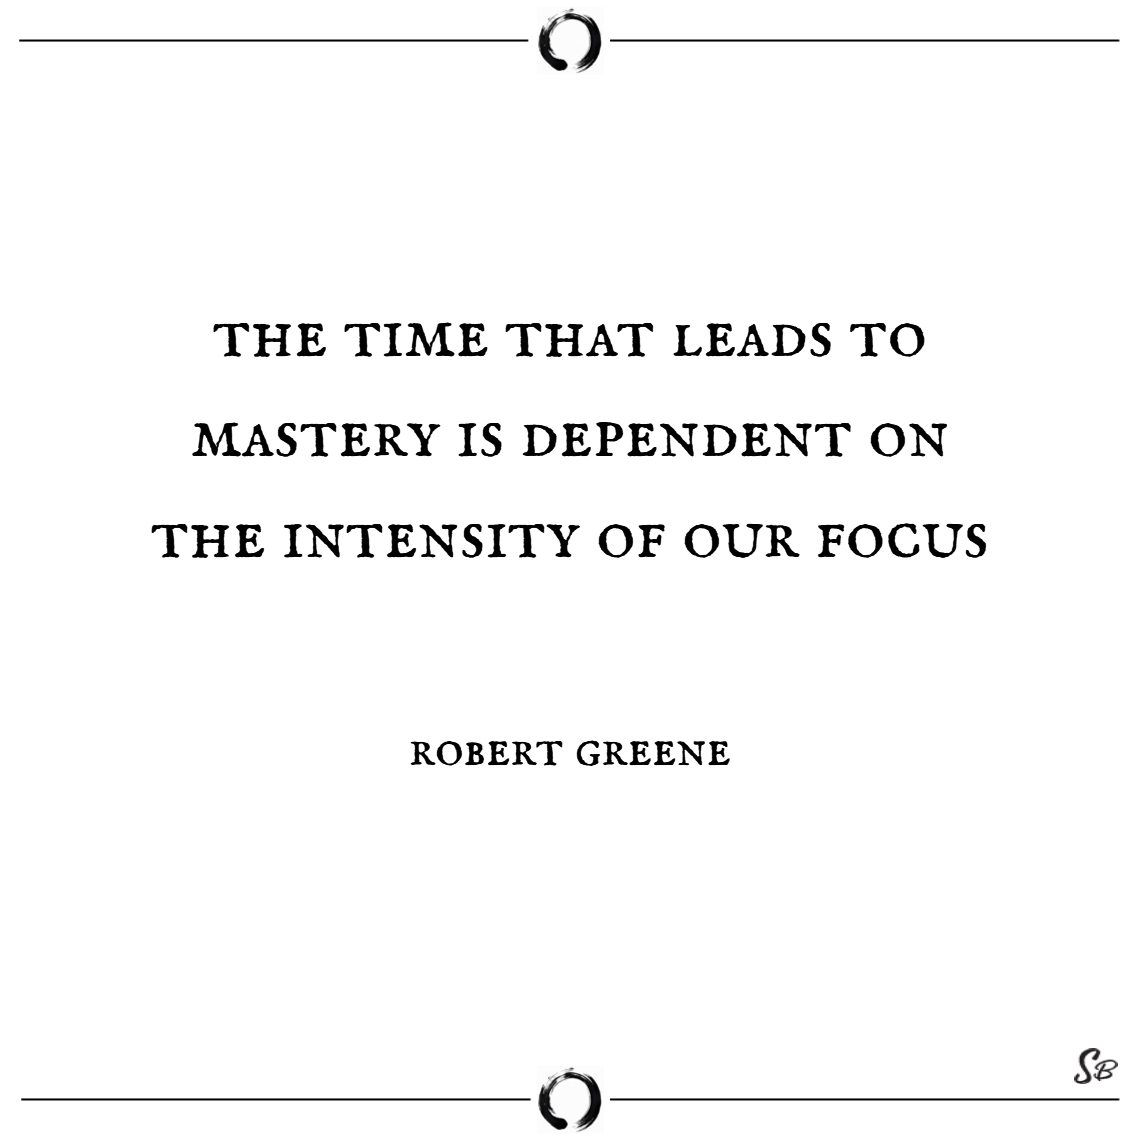 The time that leads to mastery is dependent on the